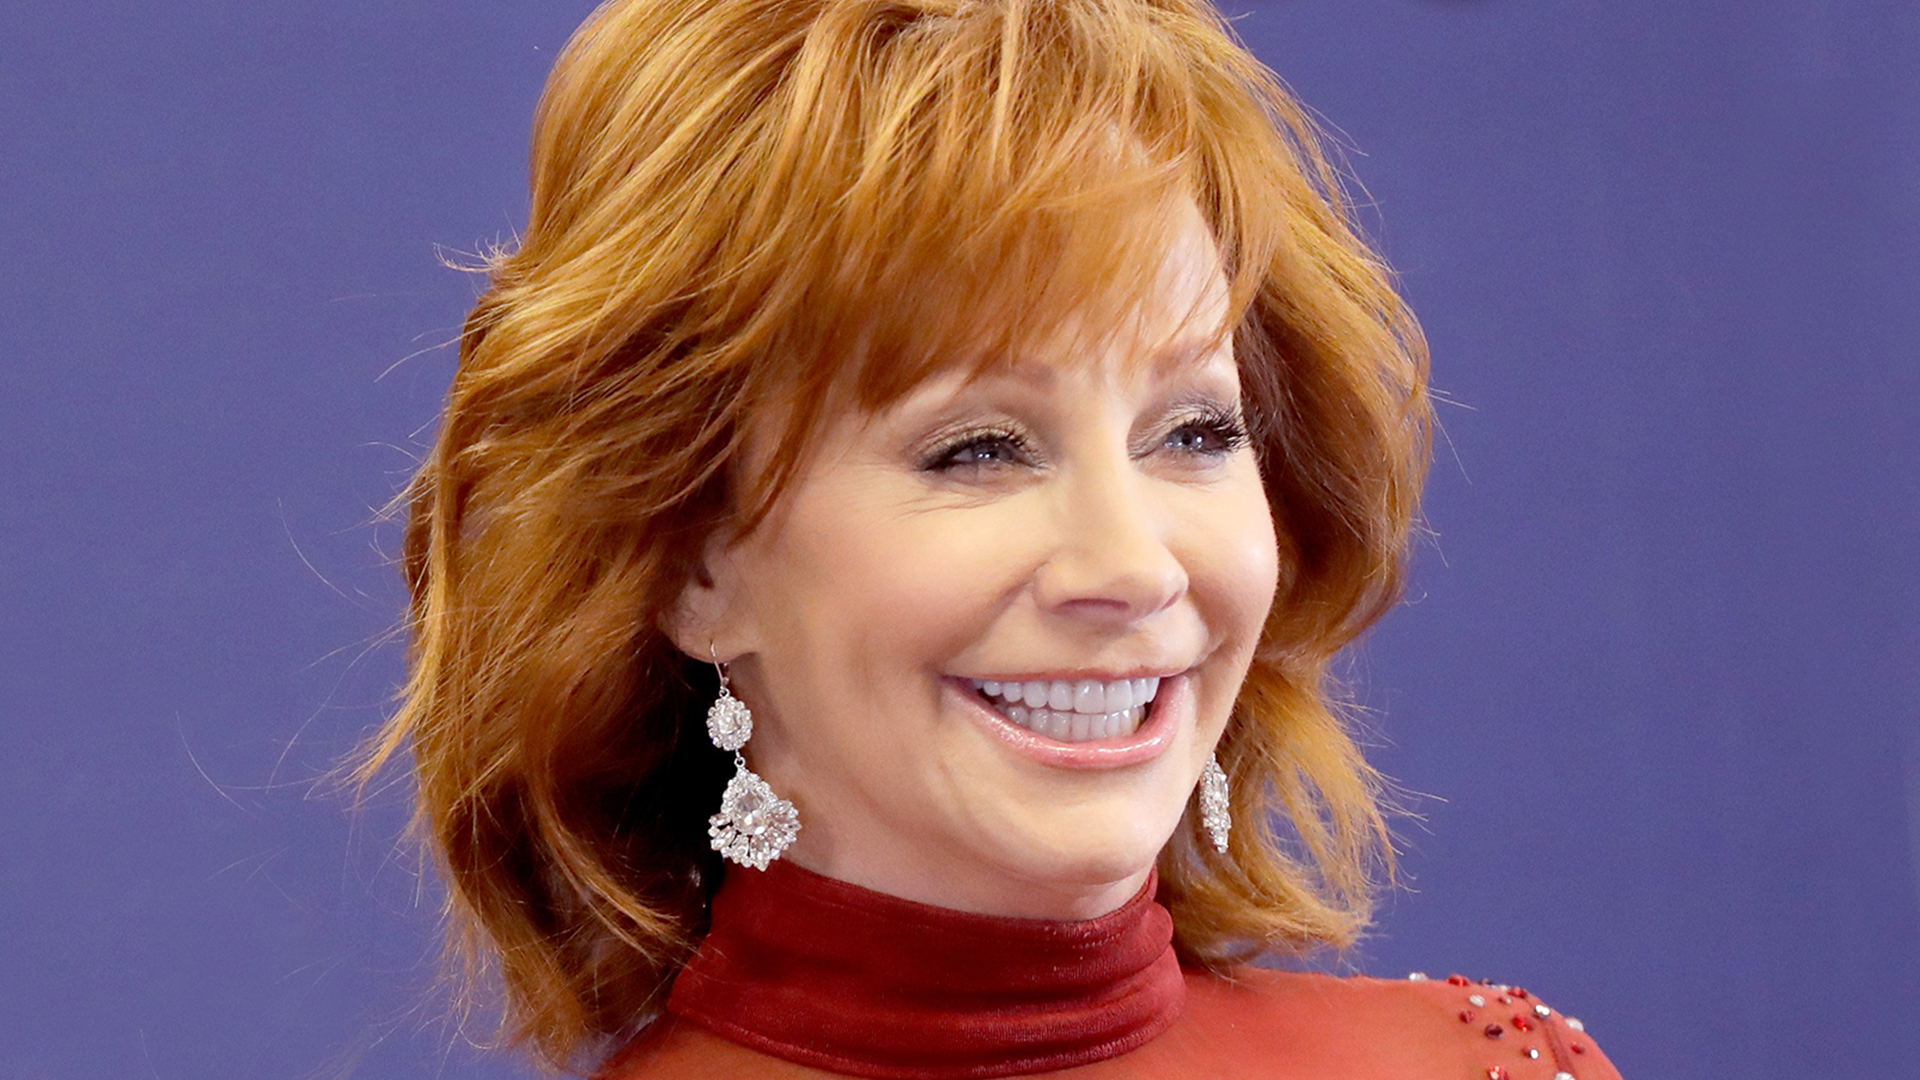 reba mcentire wore her 1993 red dress dress at the 2018 acms